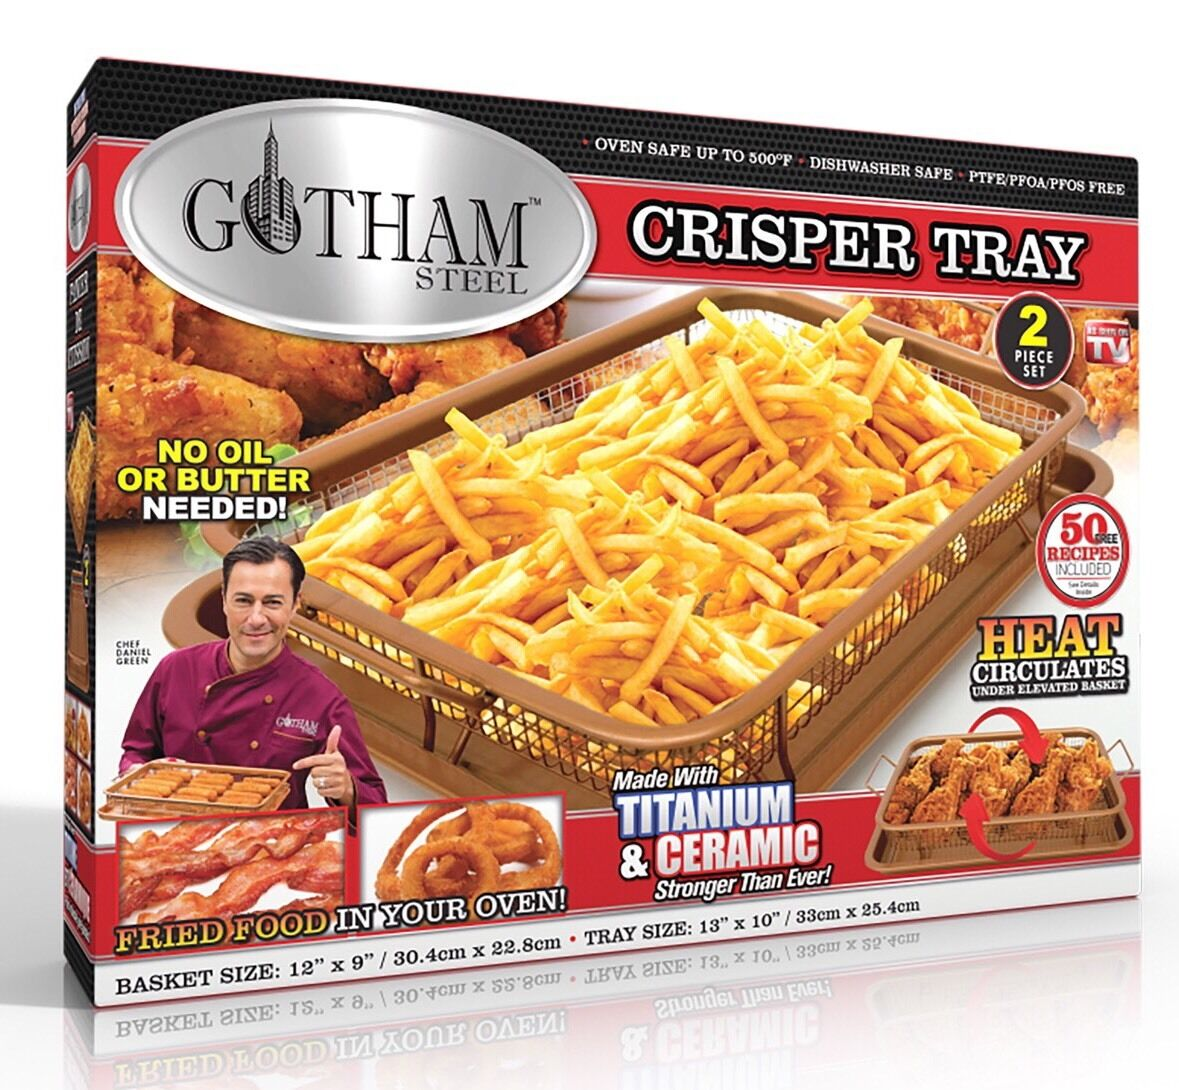 Gotham Steel Copper Crisper Tray - AIR FRY IN YOUR OVEN - As Seen on TV - NEW! 3